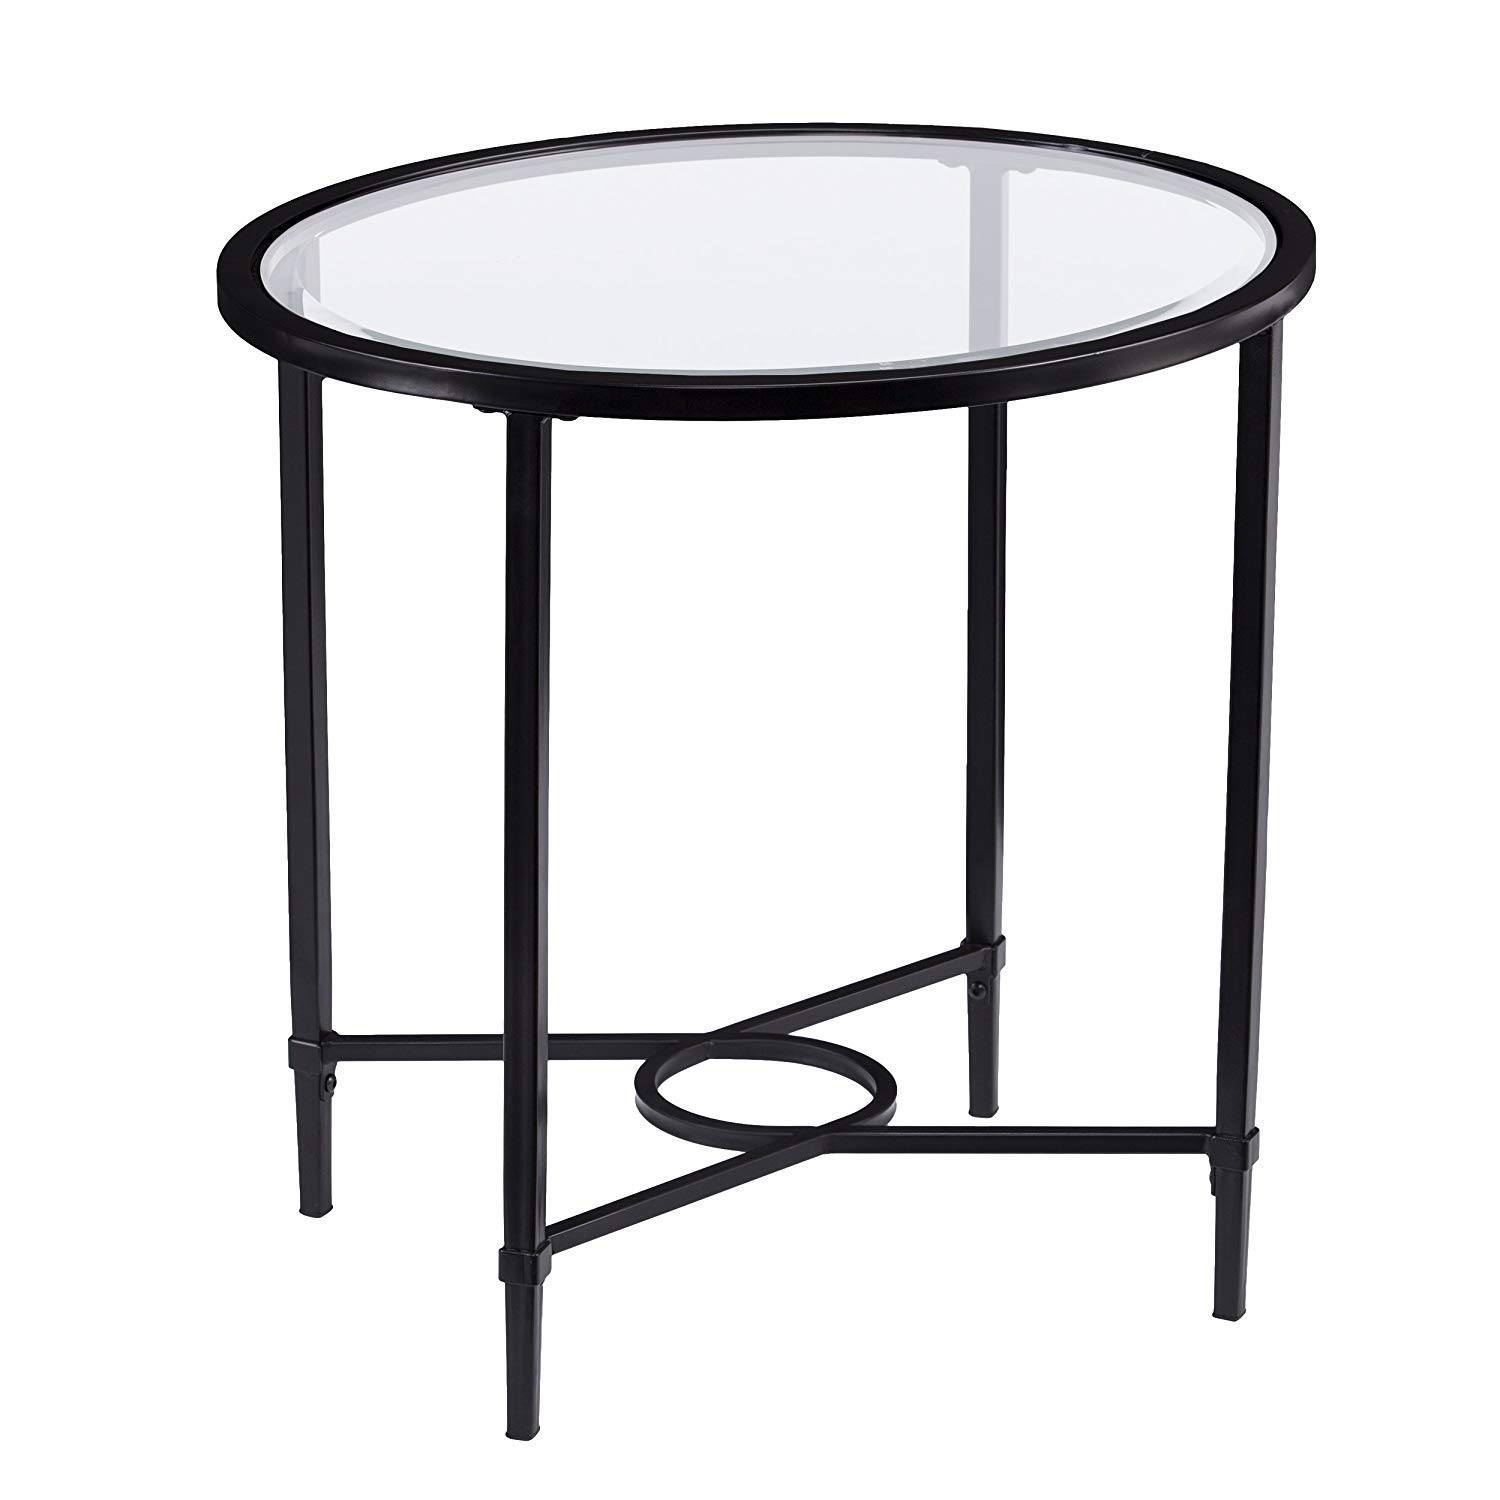 round glass top end table black oval kitchen dining marble side wood and iron coffee space between sofa contemporary tables cracked unfinished furniture island dog crate bedside